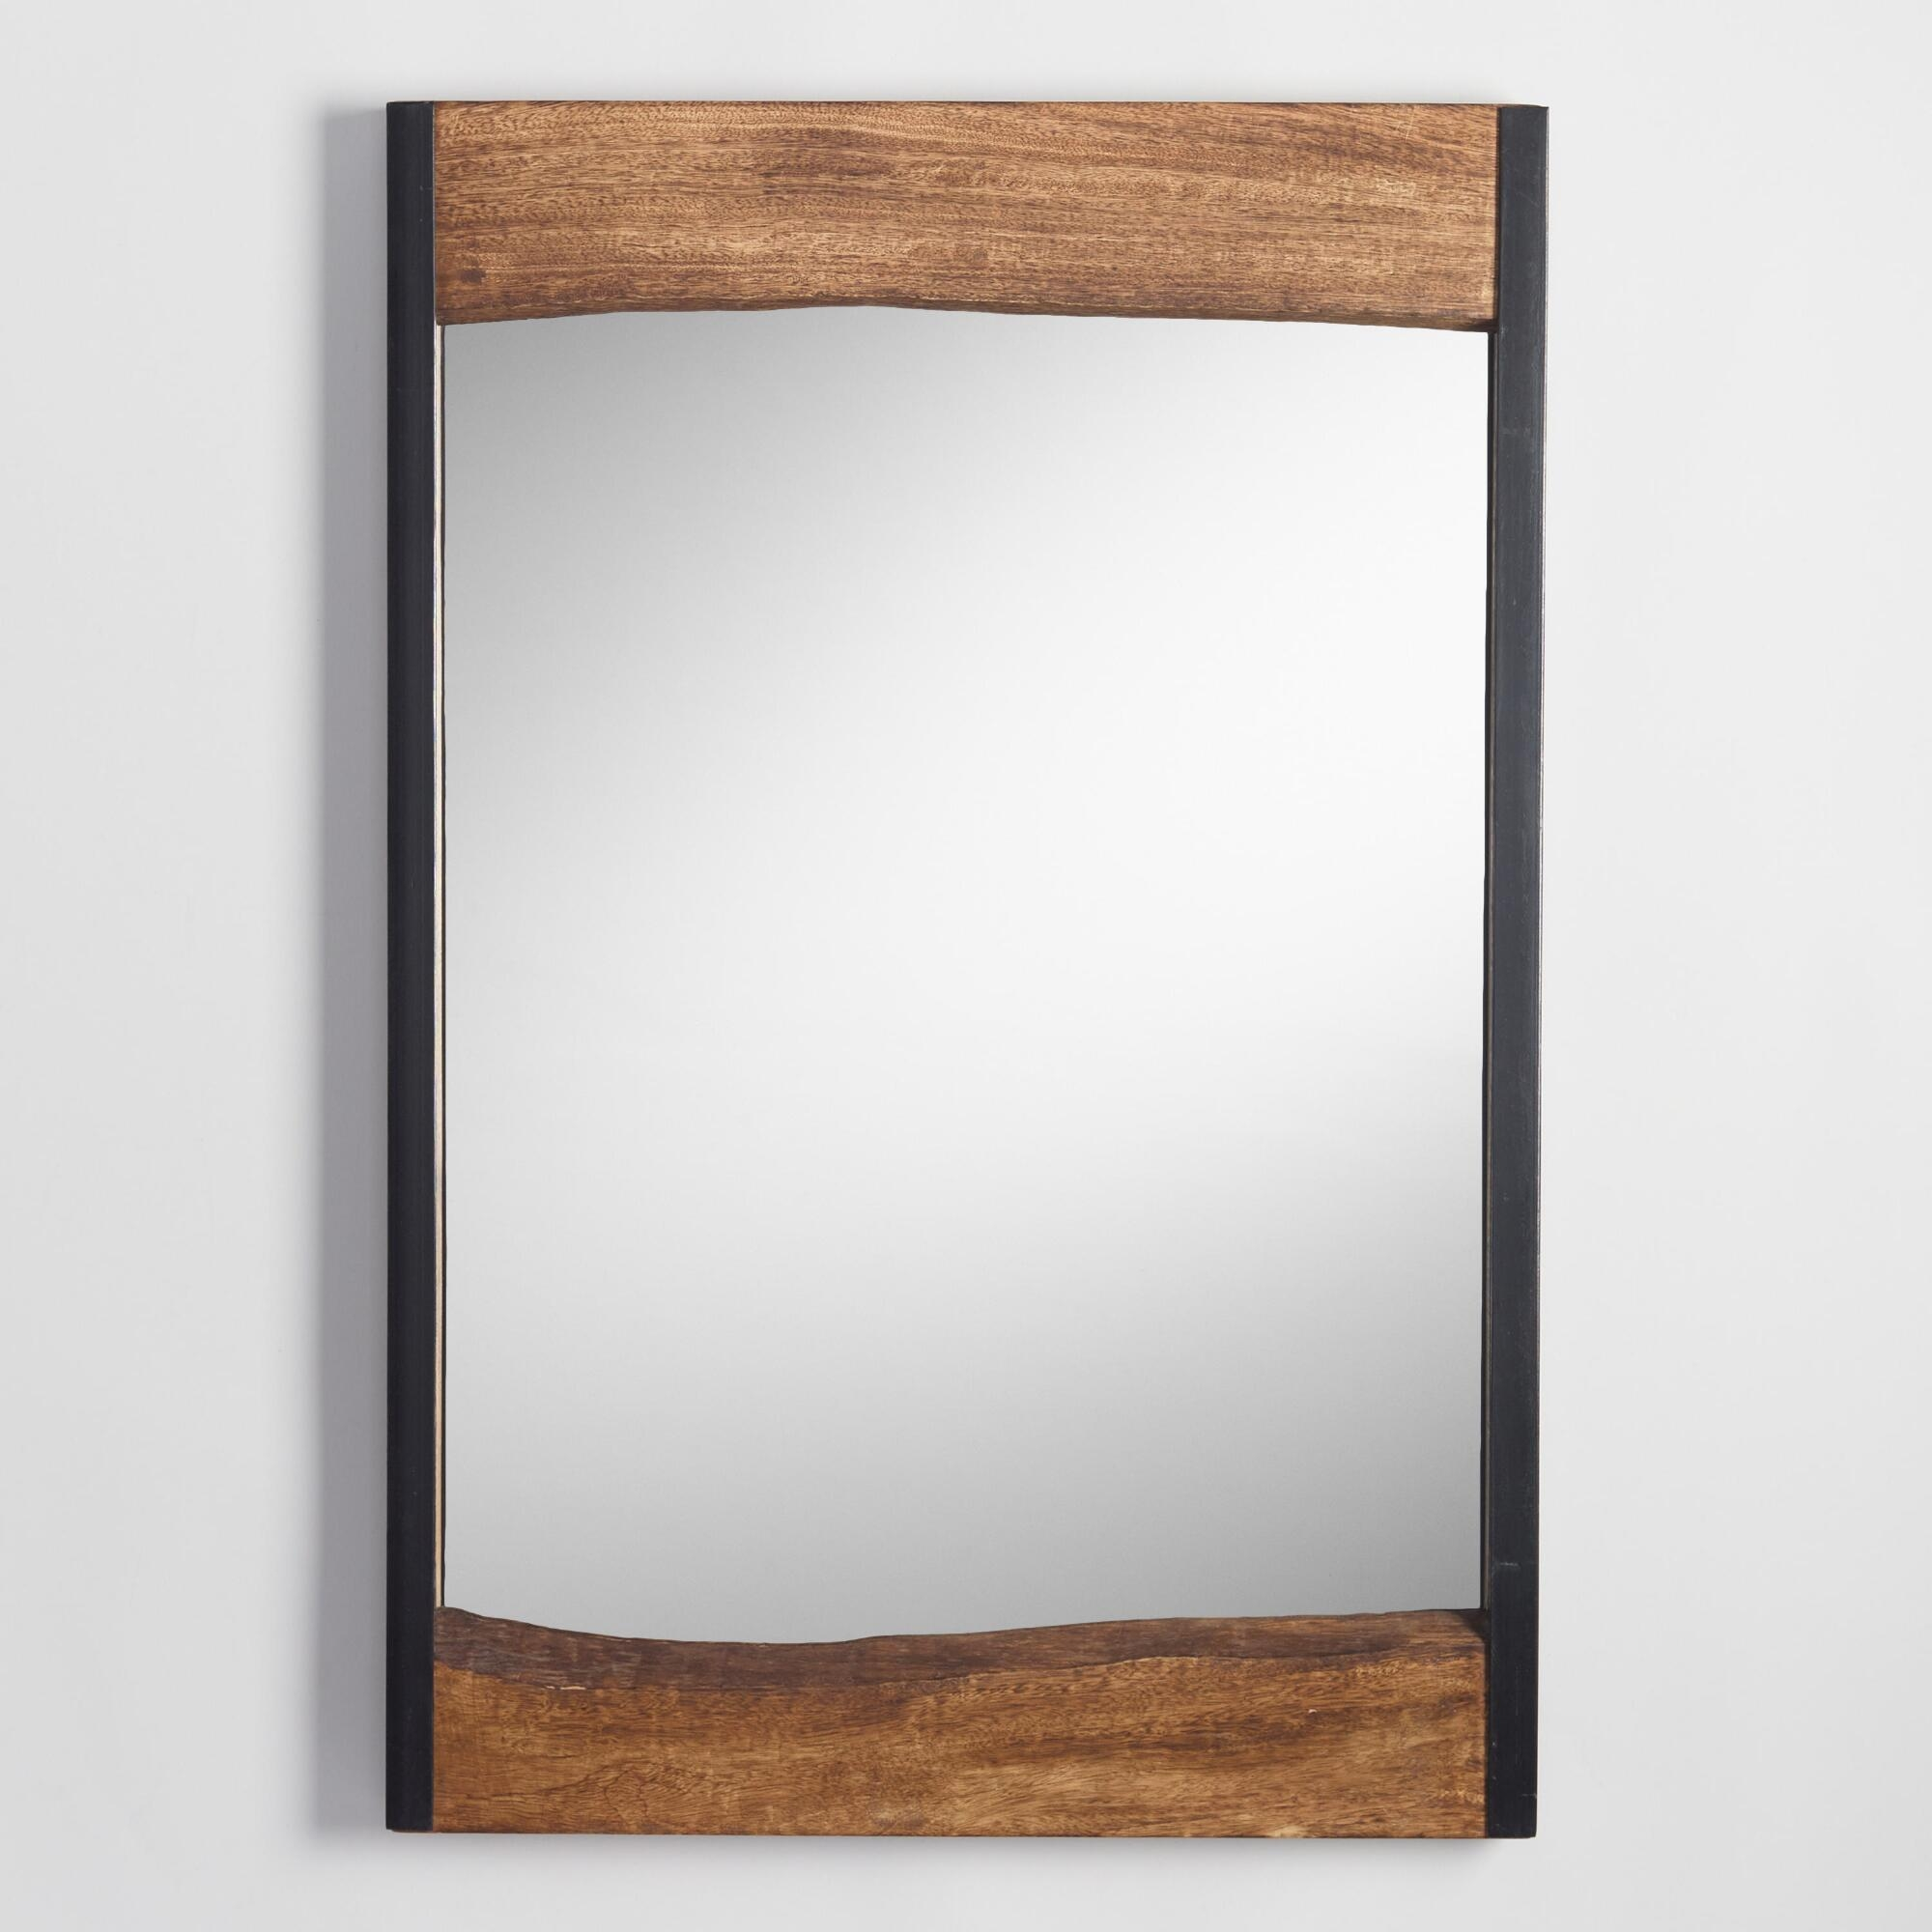 Mirror : Beech Wood Framed Mirrors Dreadful Beach Wood Framed Within Beech Wood Framed Mirrors (Image 13 of 20)